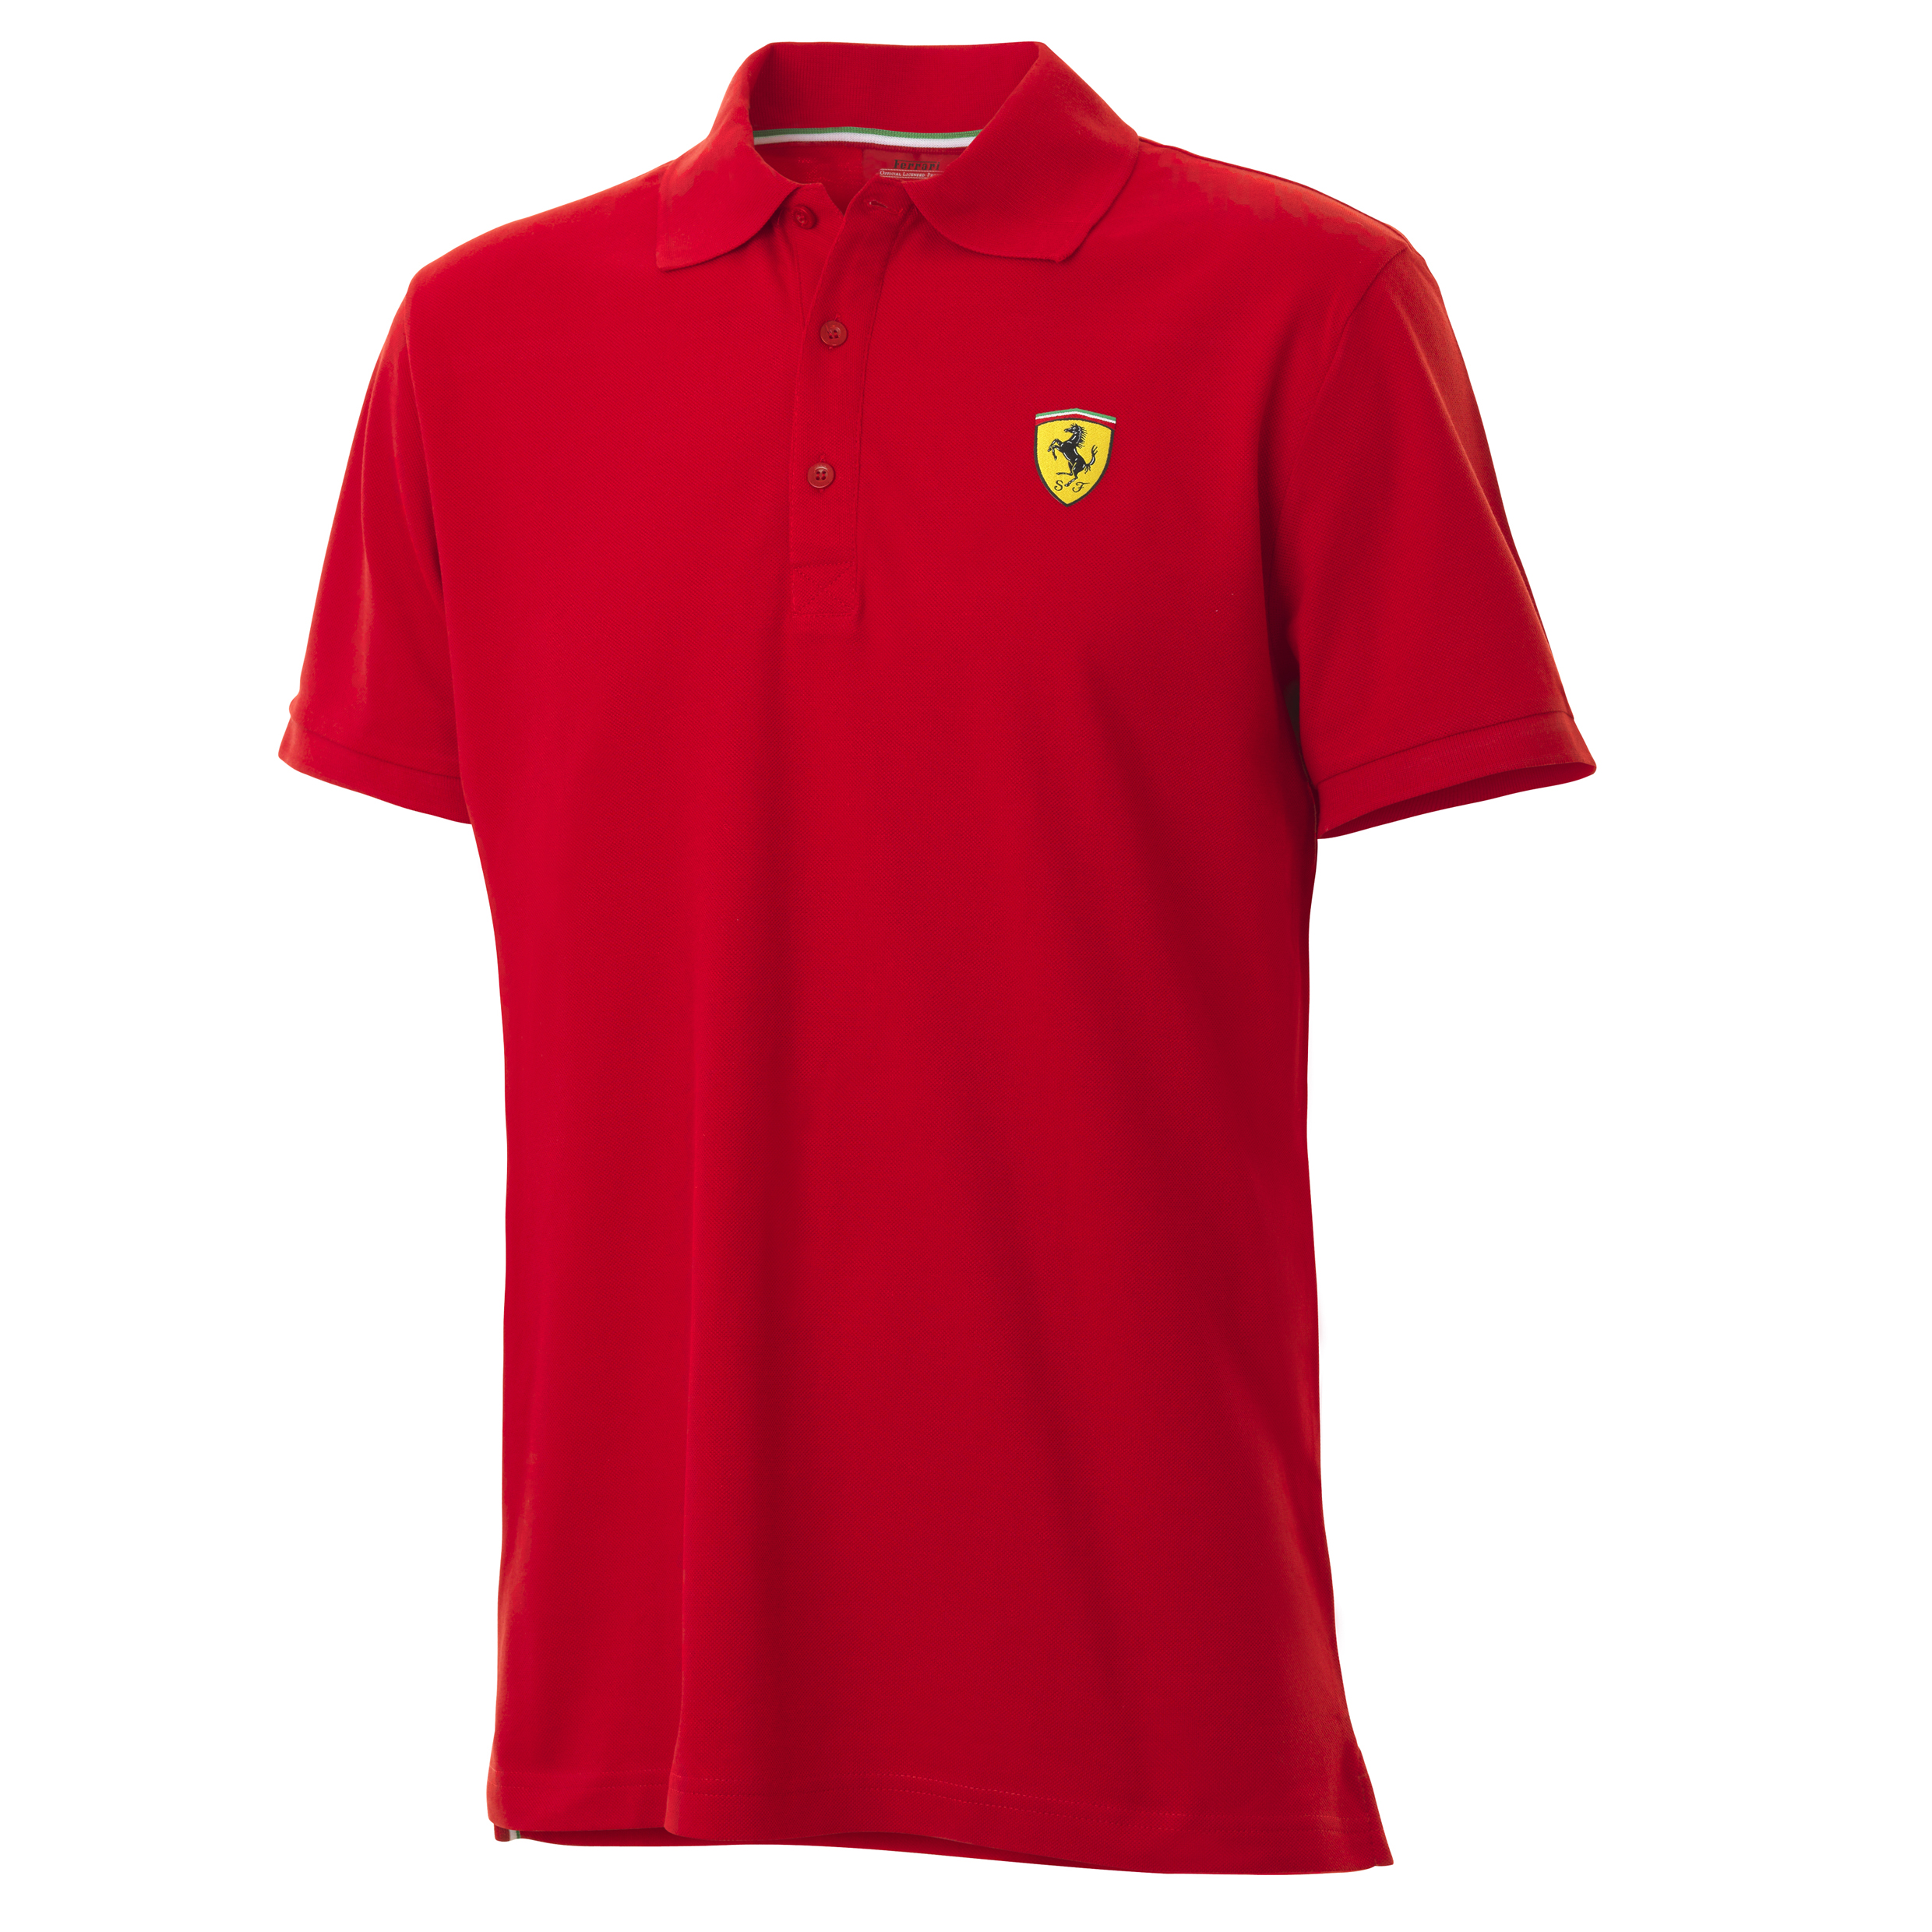 Scuderia Ferrari Classic Polo Shirt - Red